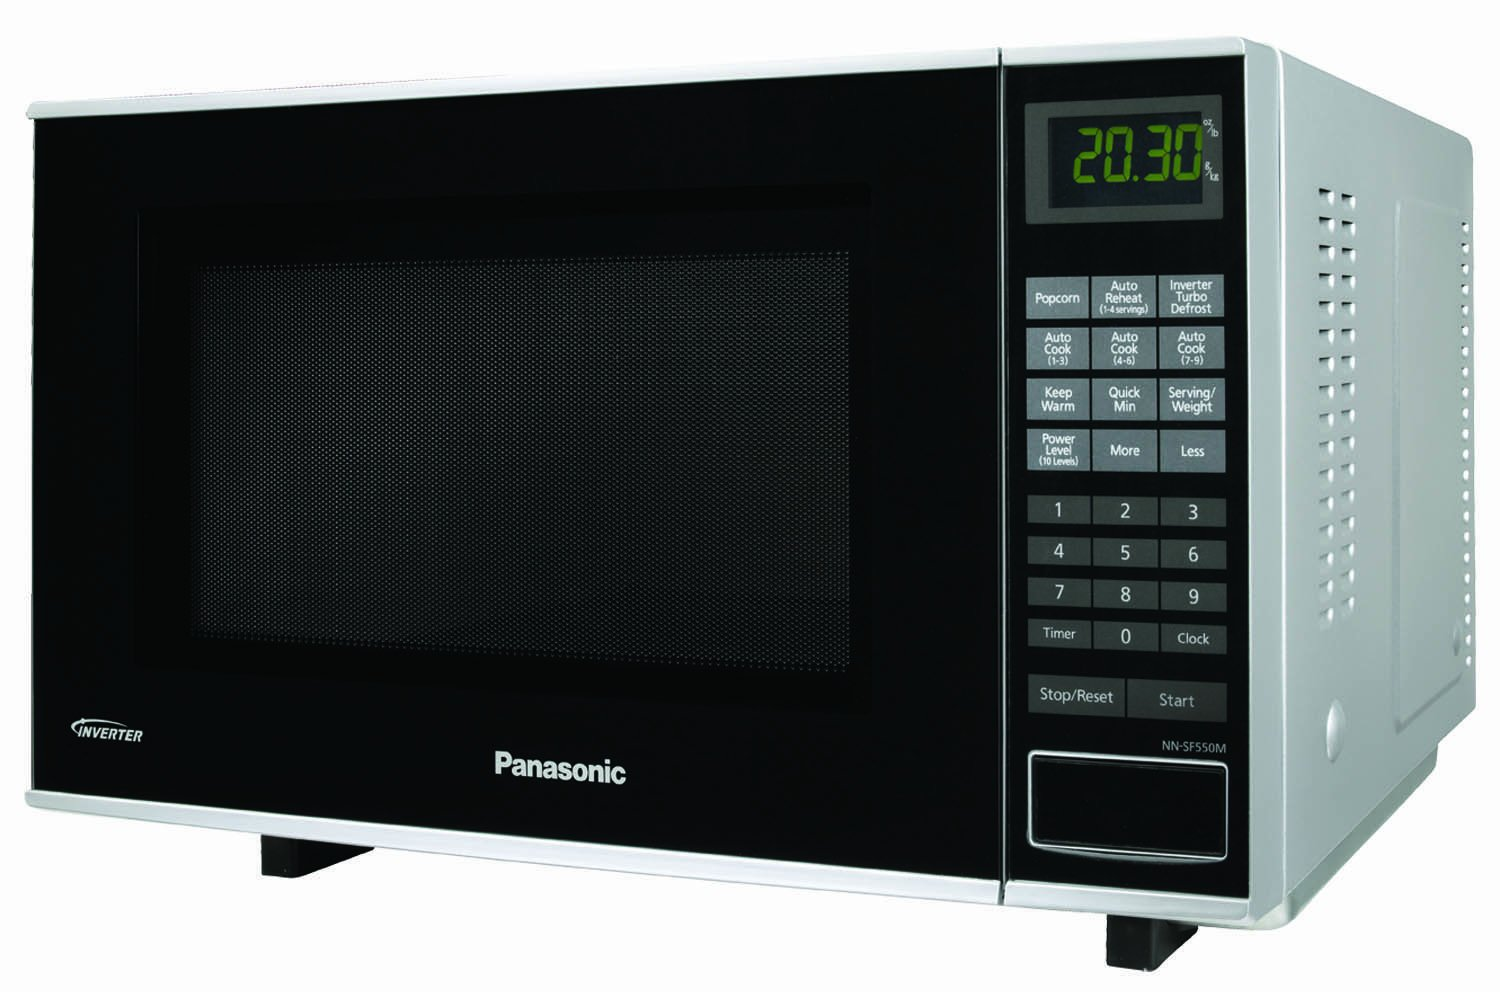 Panasonic NN-SF550M, Plata, 12020 g: Amazon.es: Hogar